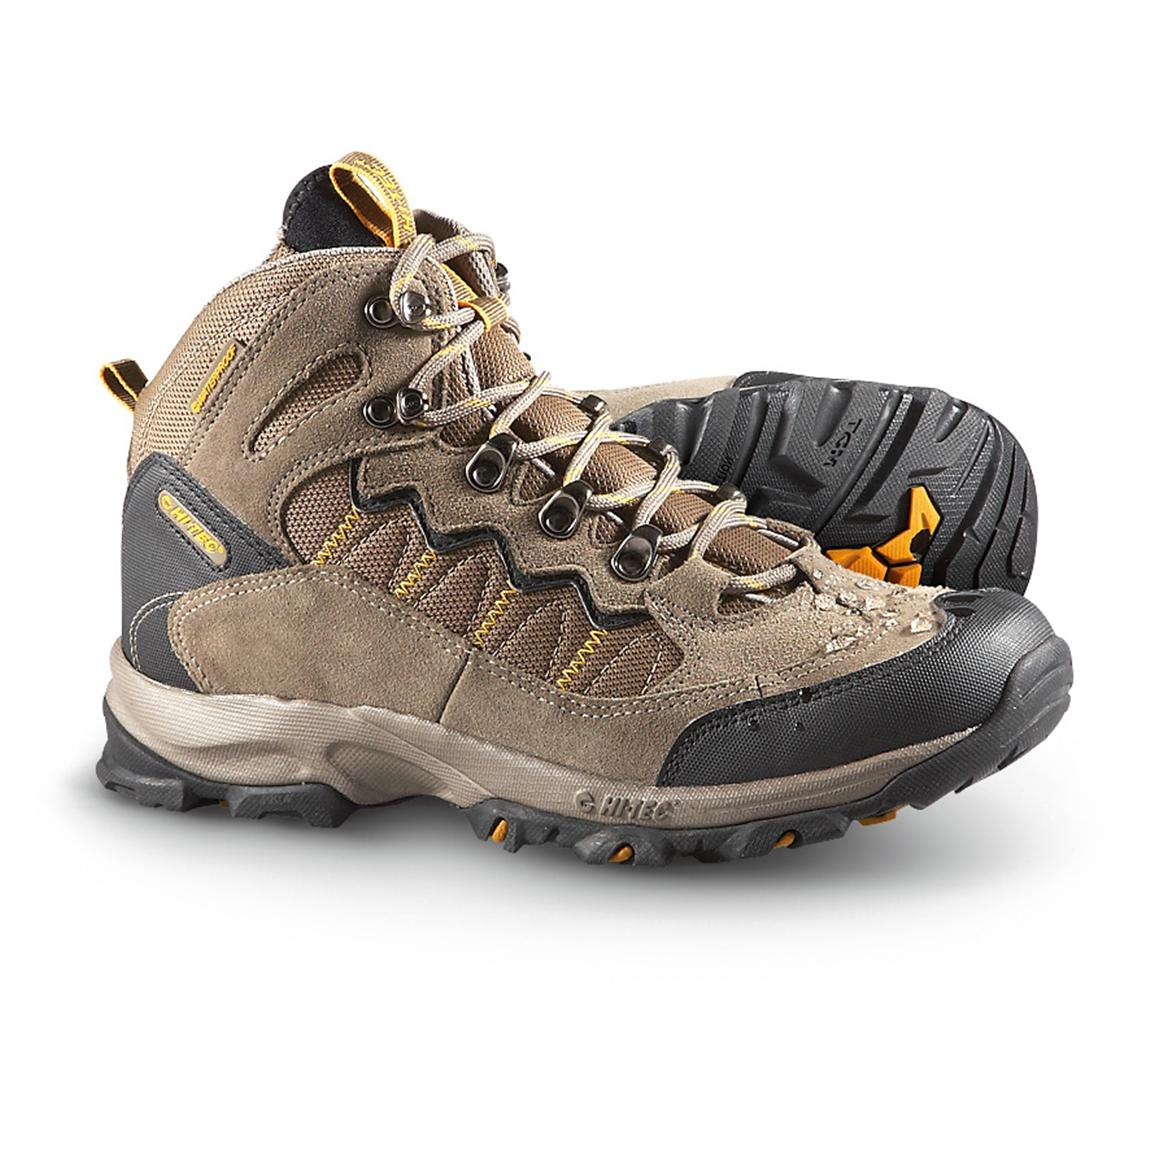 Men's Hi - Tec® Ocala Waterproof Hiking Boots, Smokey Brown ...